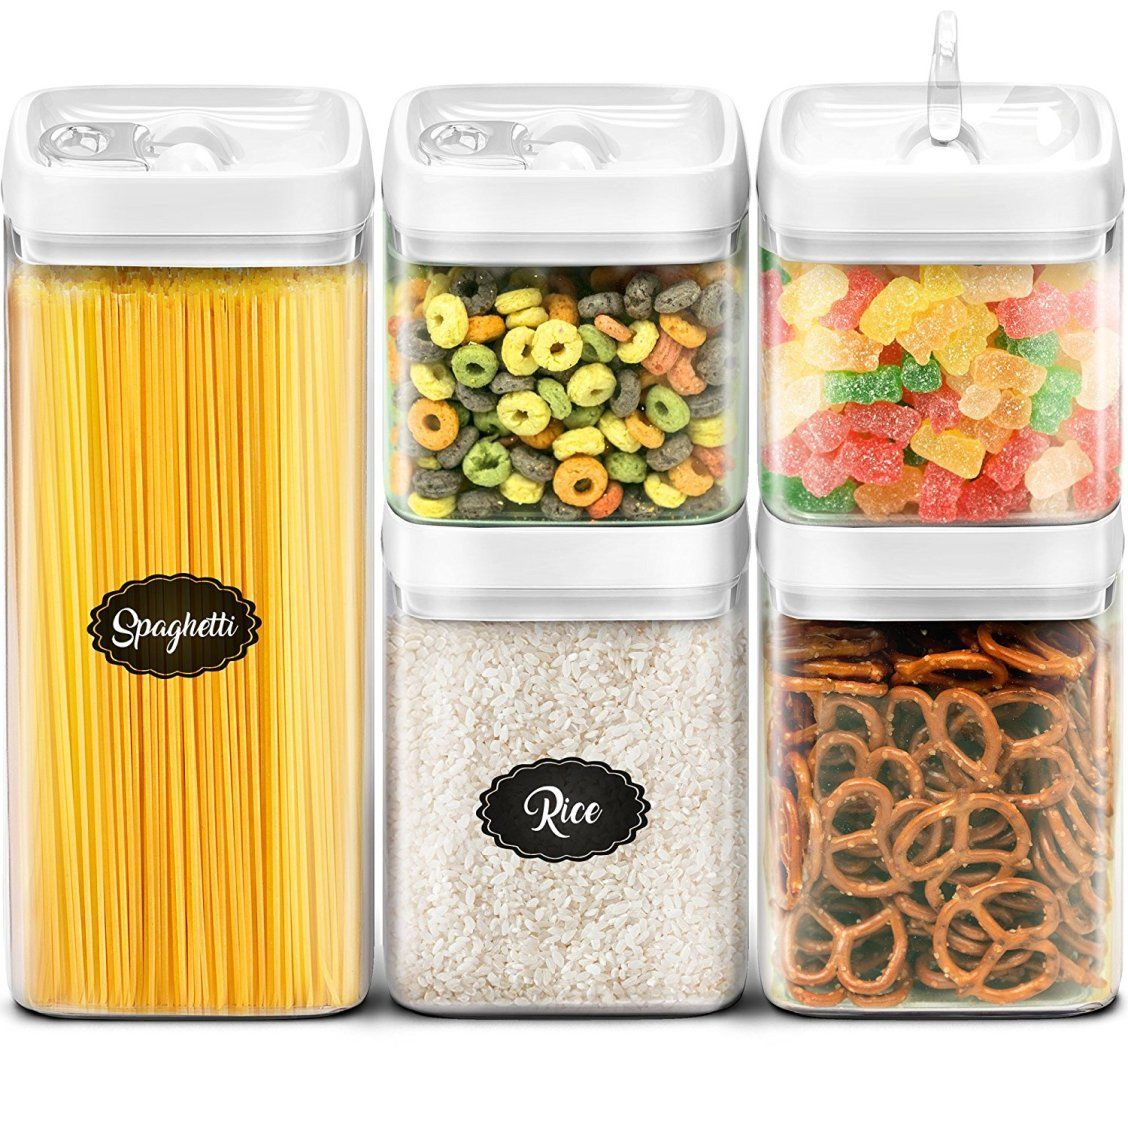 My Home Magic 5 Piece Container Set Everyone Needs This Perfect Spring Cleaning Conta Airtight Food Storage Airtight Food Storage Containers Dry Food Storage